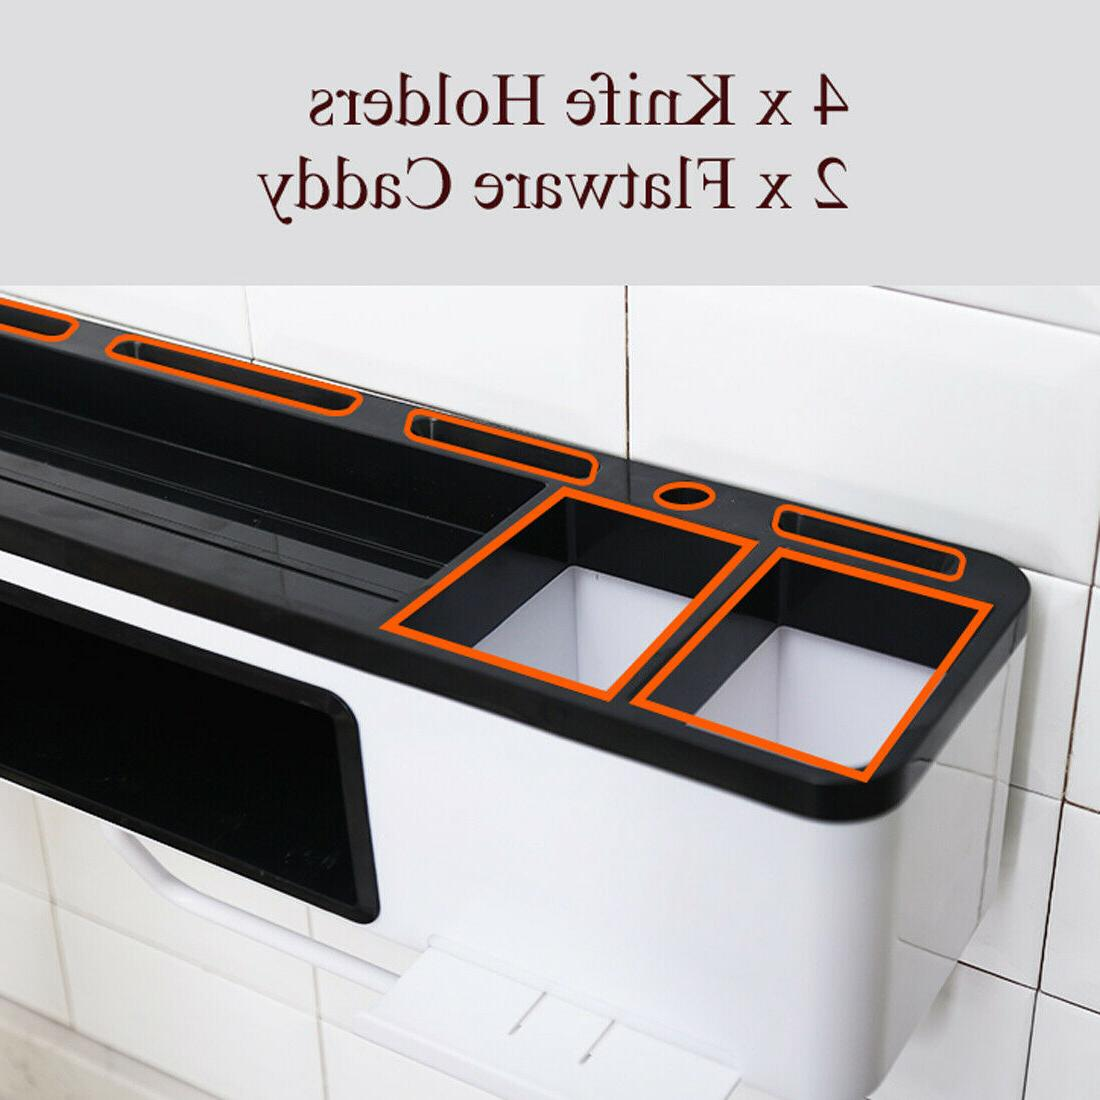 Kitchen Organization Rack Holder Shelves Towel Bar